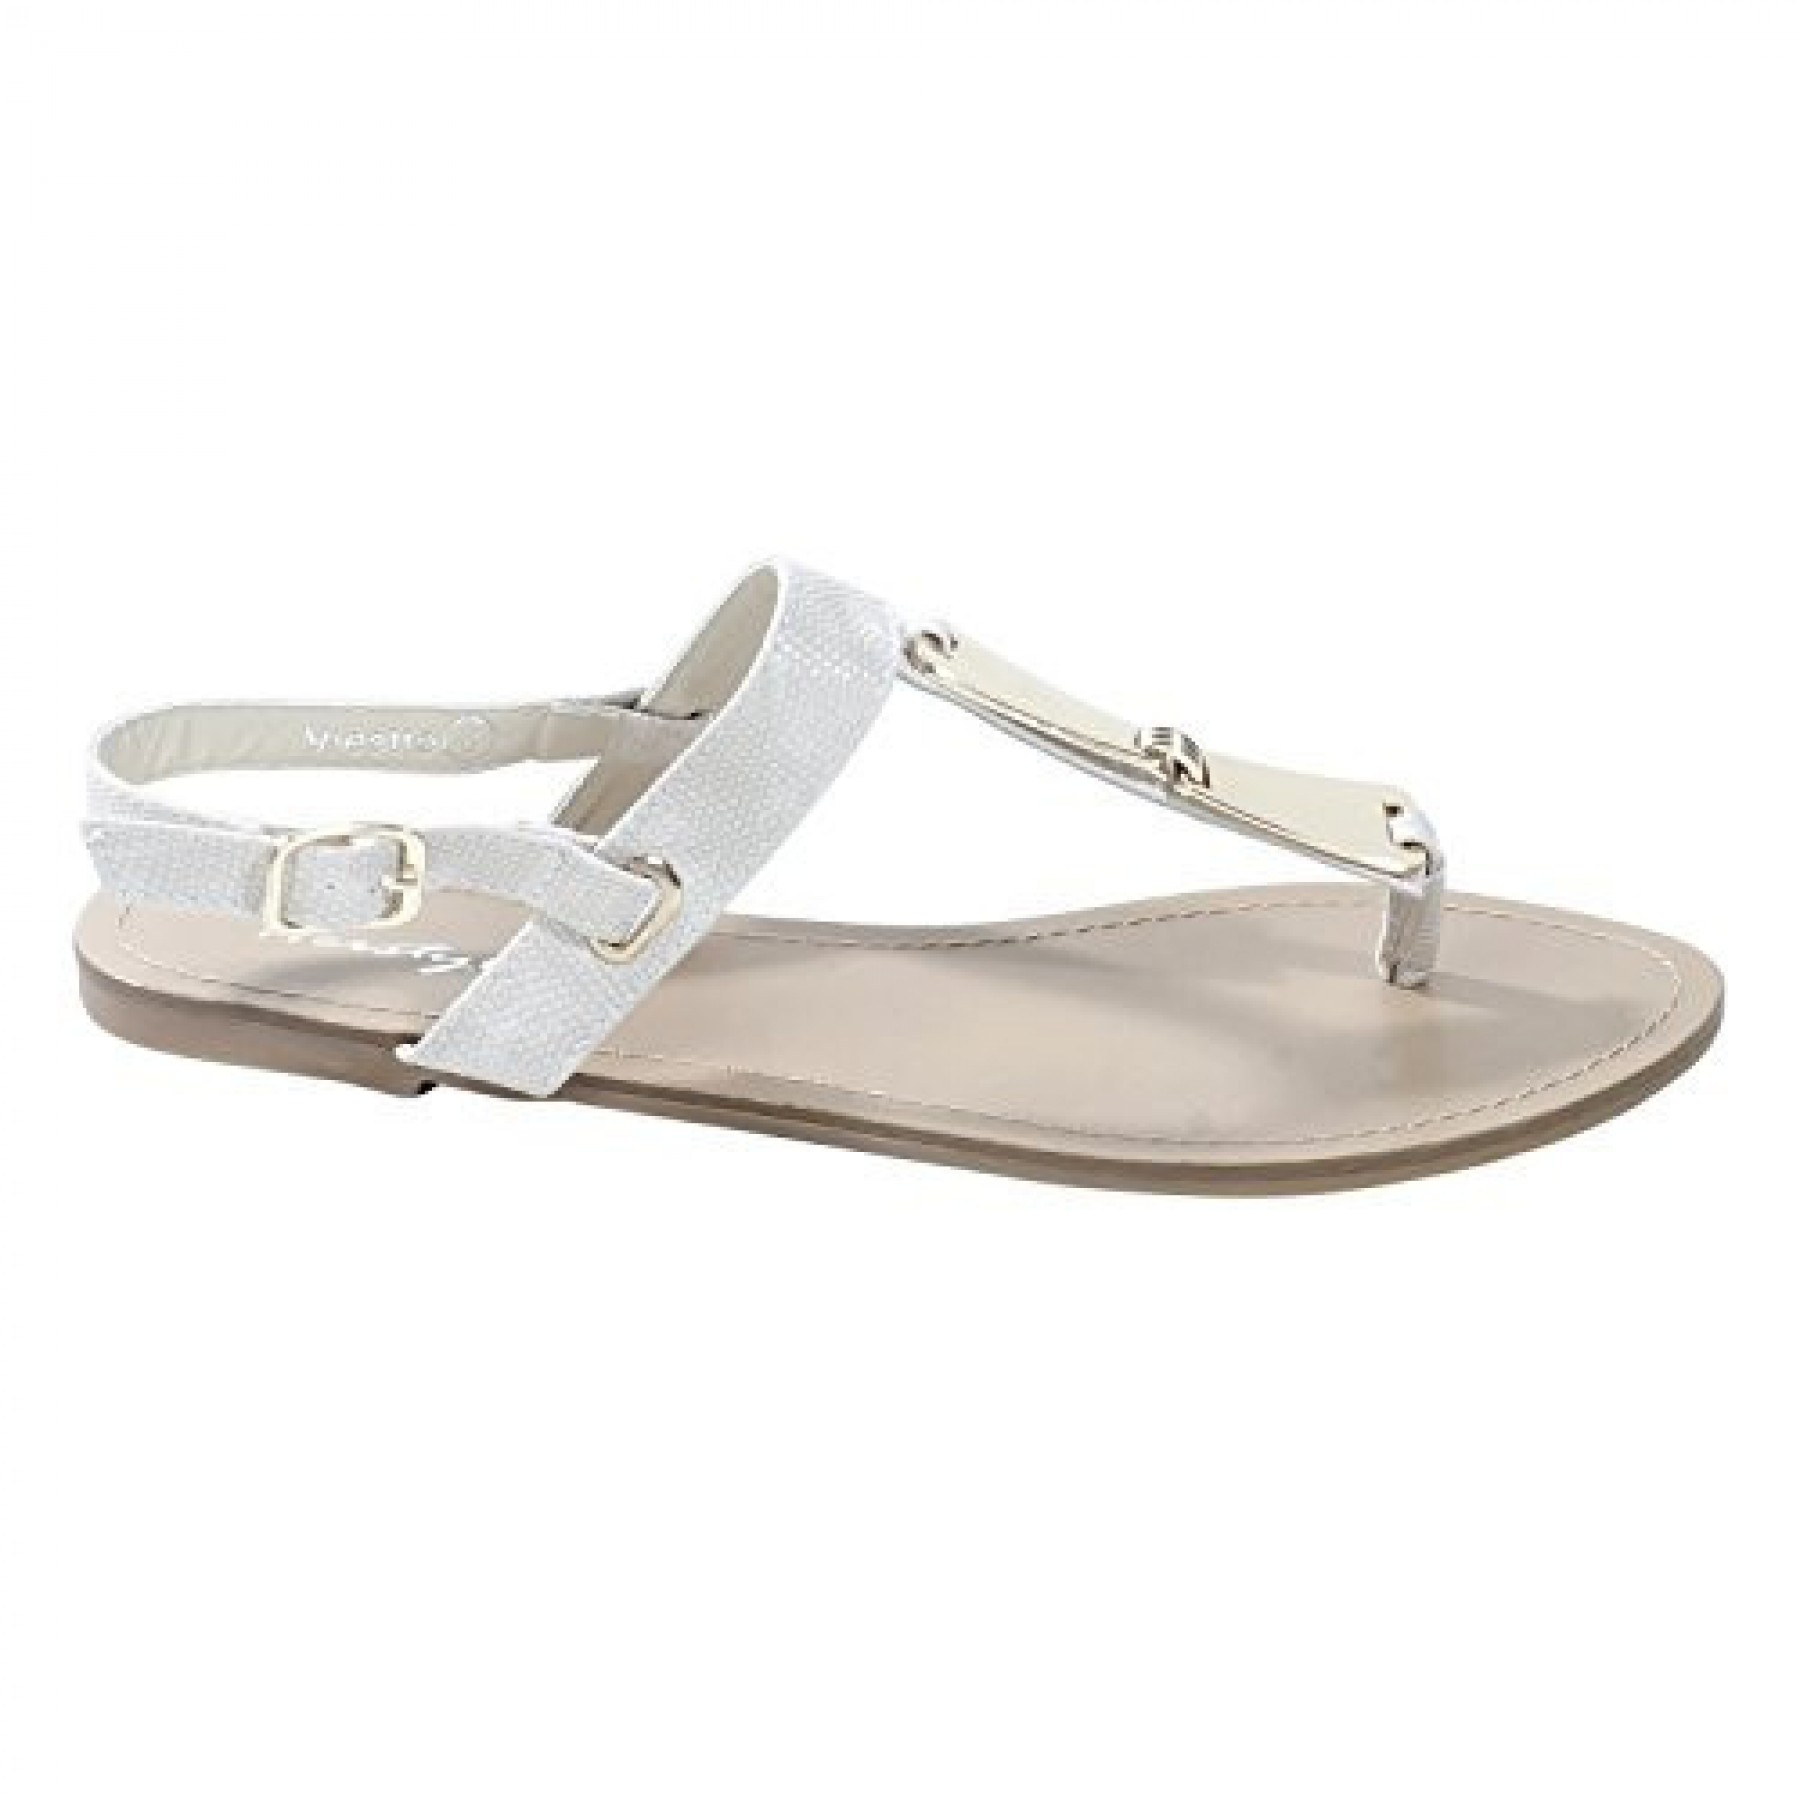 Women's Beige Manmade Viestte Textured Strap Sandal with Gold-Tone Accents